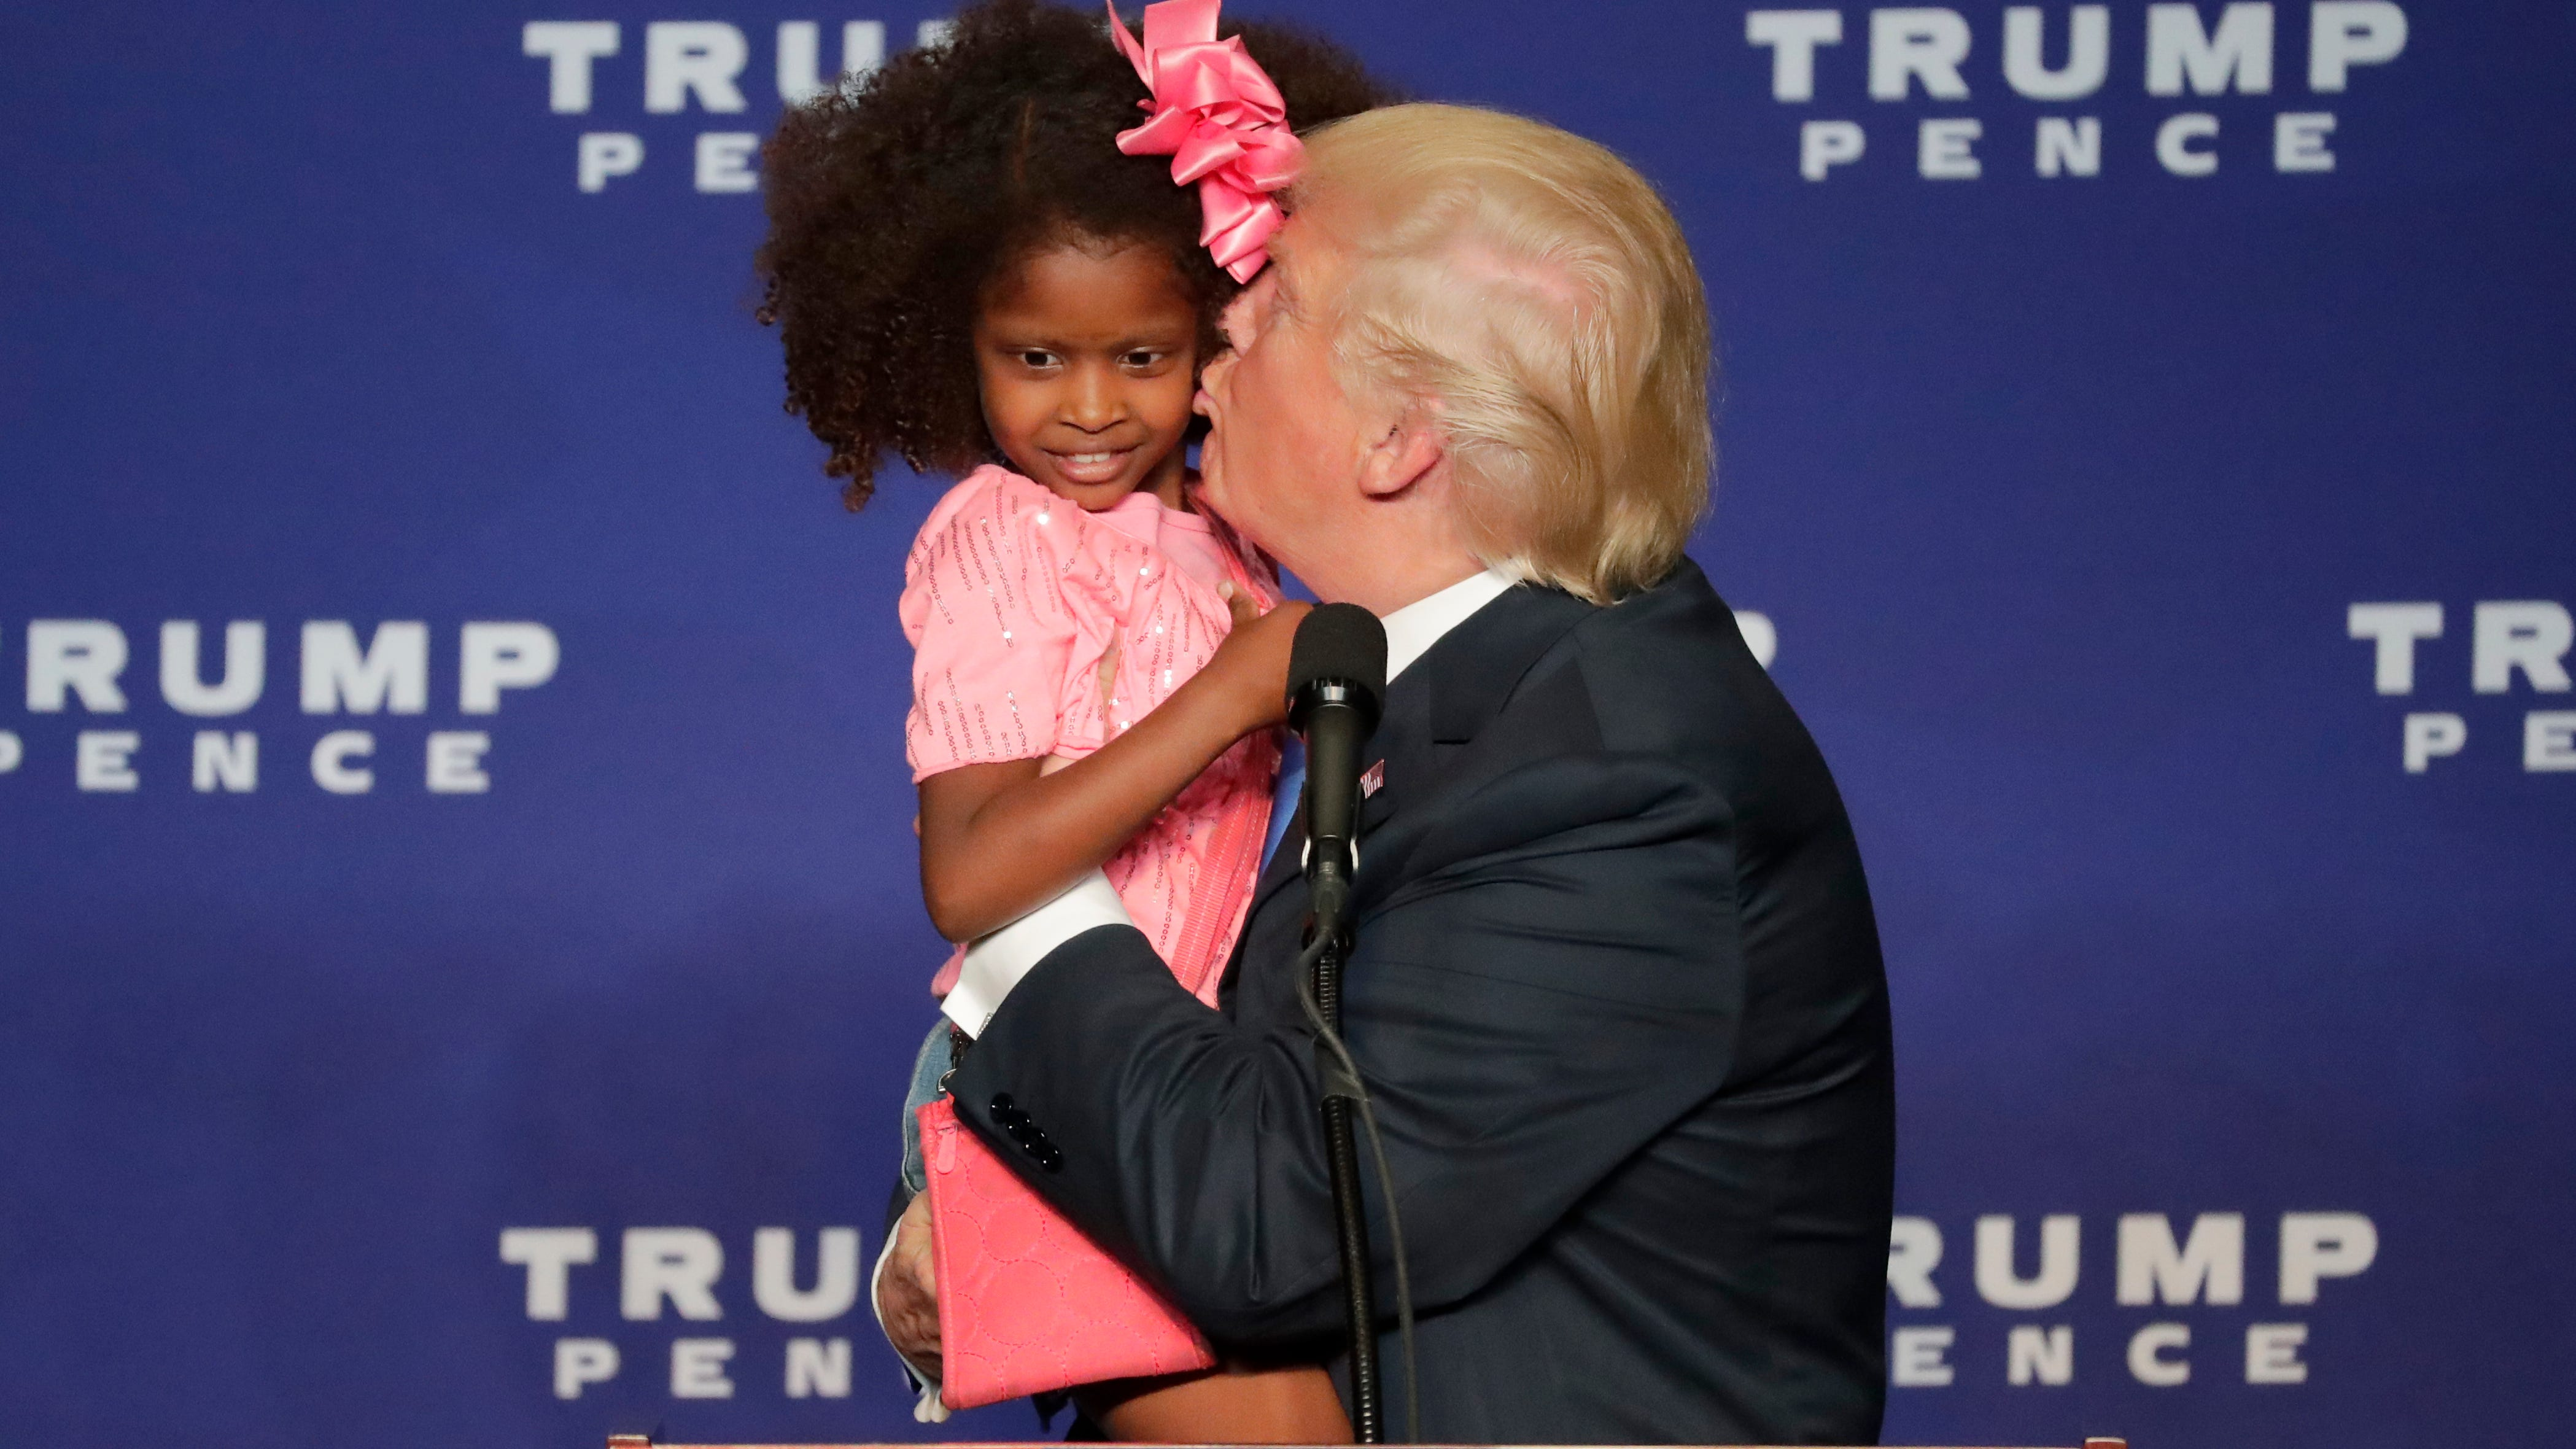 Presidential candidate Donald Trump kisses a young girl he called up onto the stage at a campaign rally at the KI Convention Center in Green Bay, October 17, 2016.